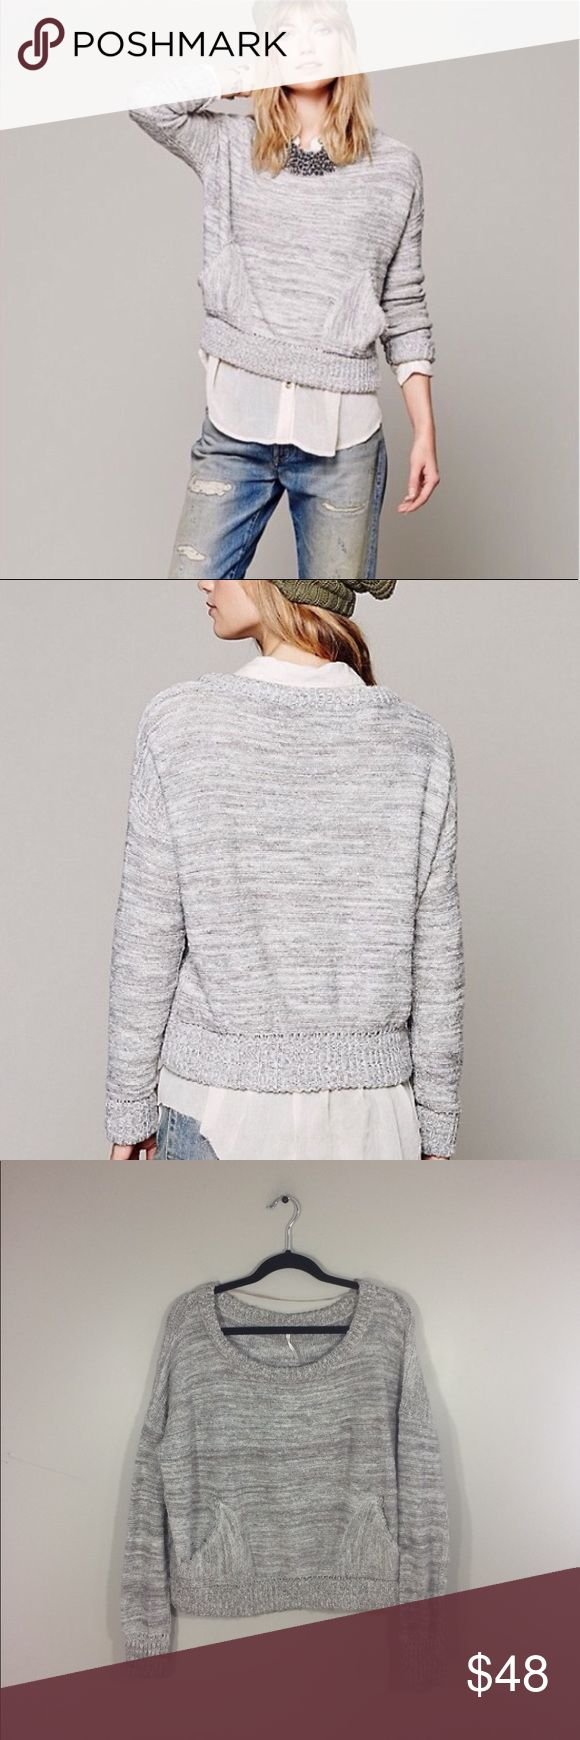 """Free People """"In My Pocket"""" Knit Sweater Has a couple of snags on the right hand sleeve and back of collar: shown in photos. Has a textured feel due to the Wool. Not a heavy weight Sweater. 49% cotton 23% acrylic 16% nylon 10% Wool 2% alpaca. 24"""" length: 25.5"""" pit to pit: no trades. Free People Sweaters"""